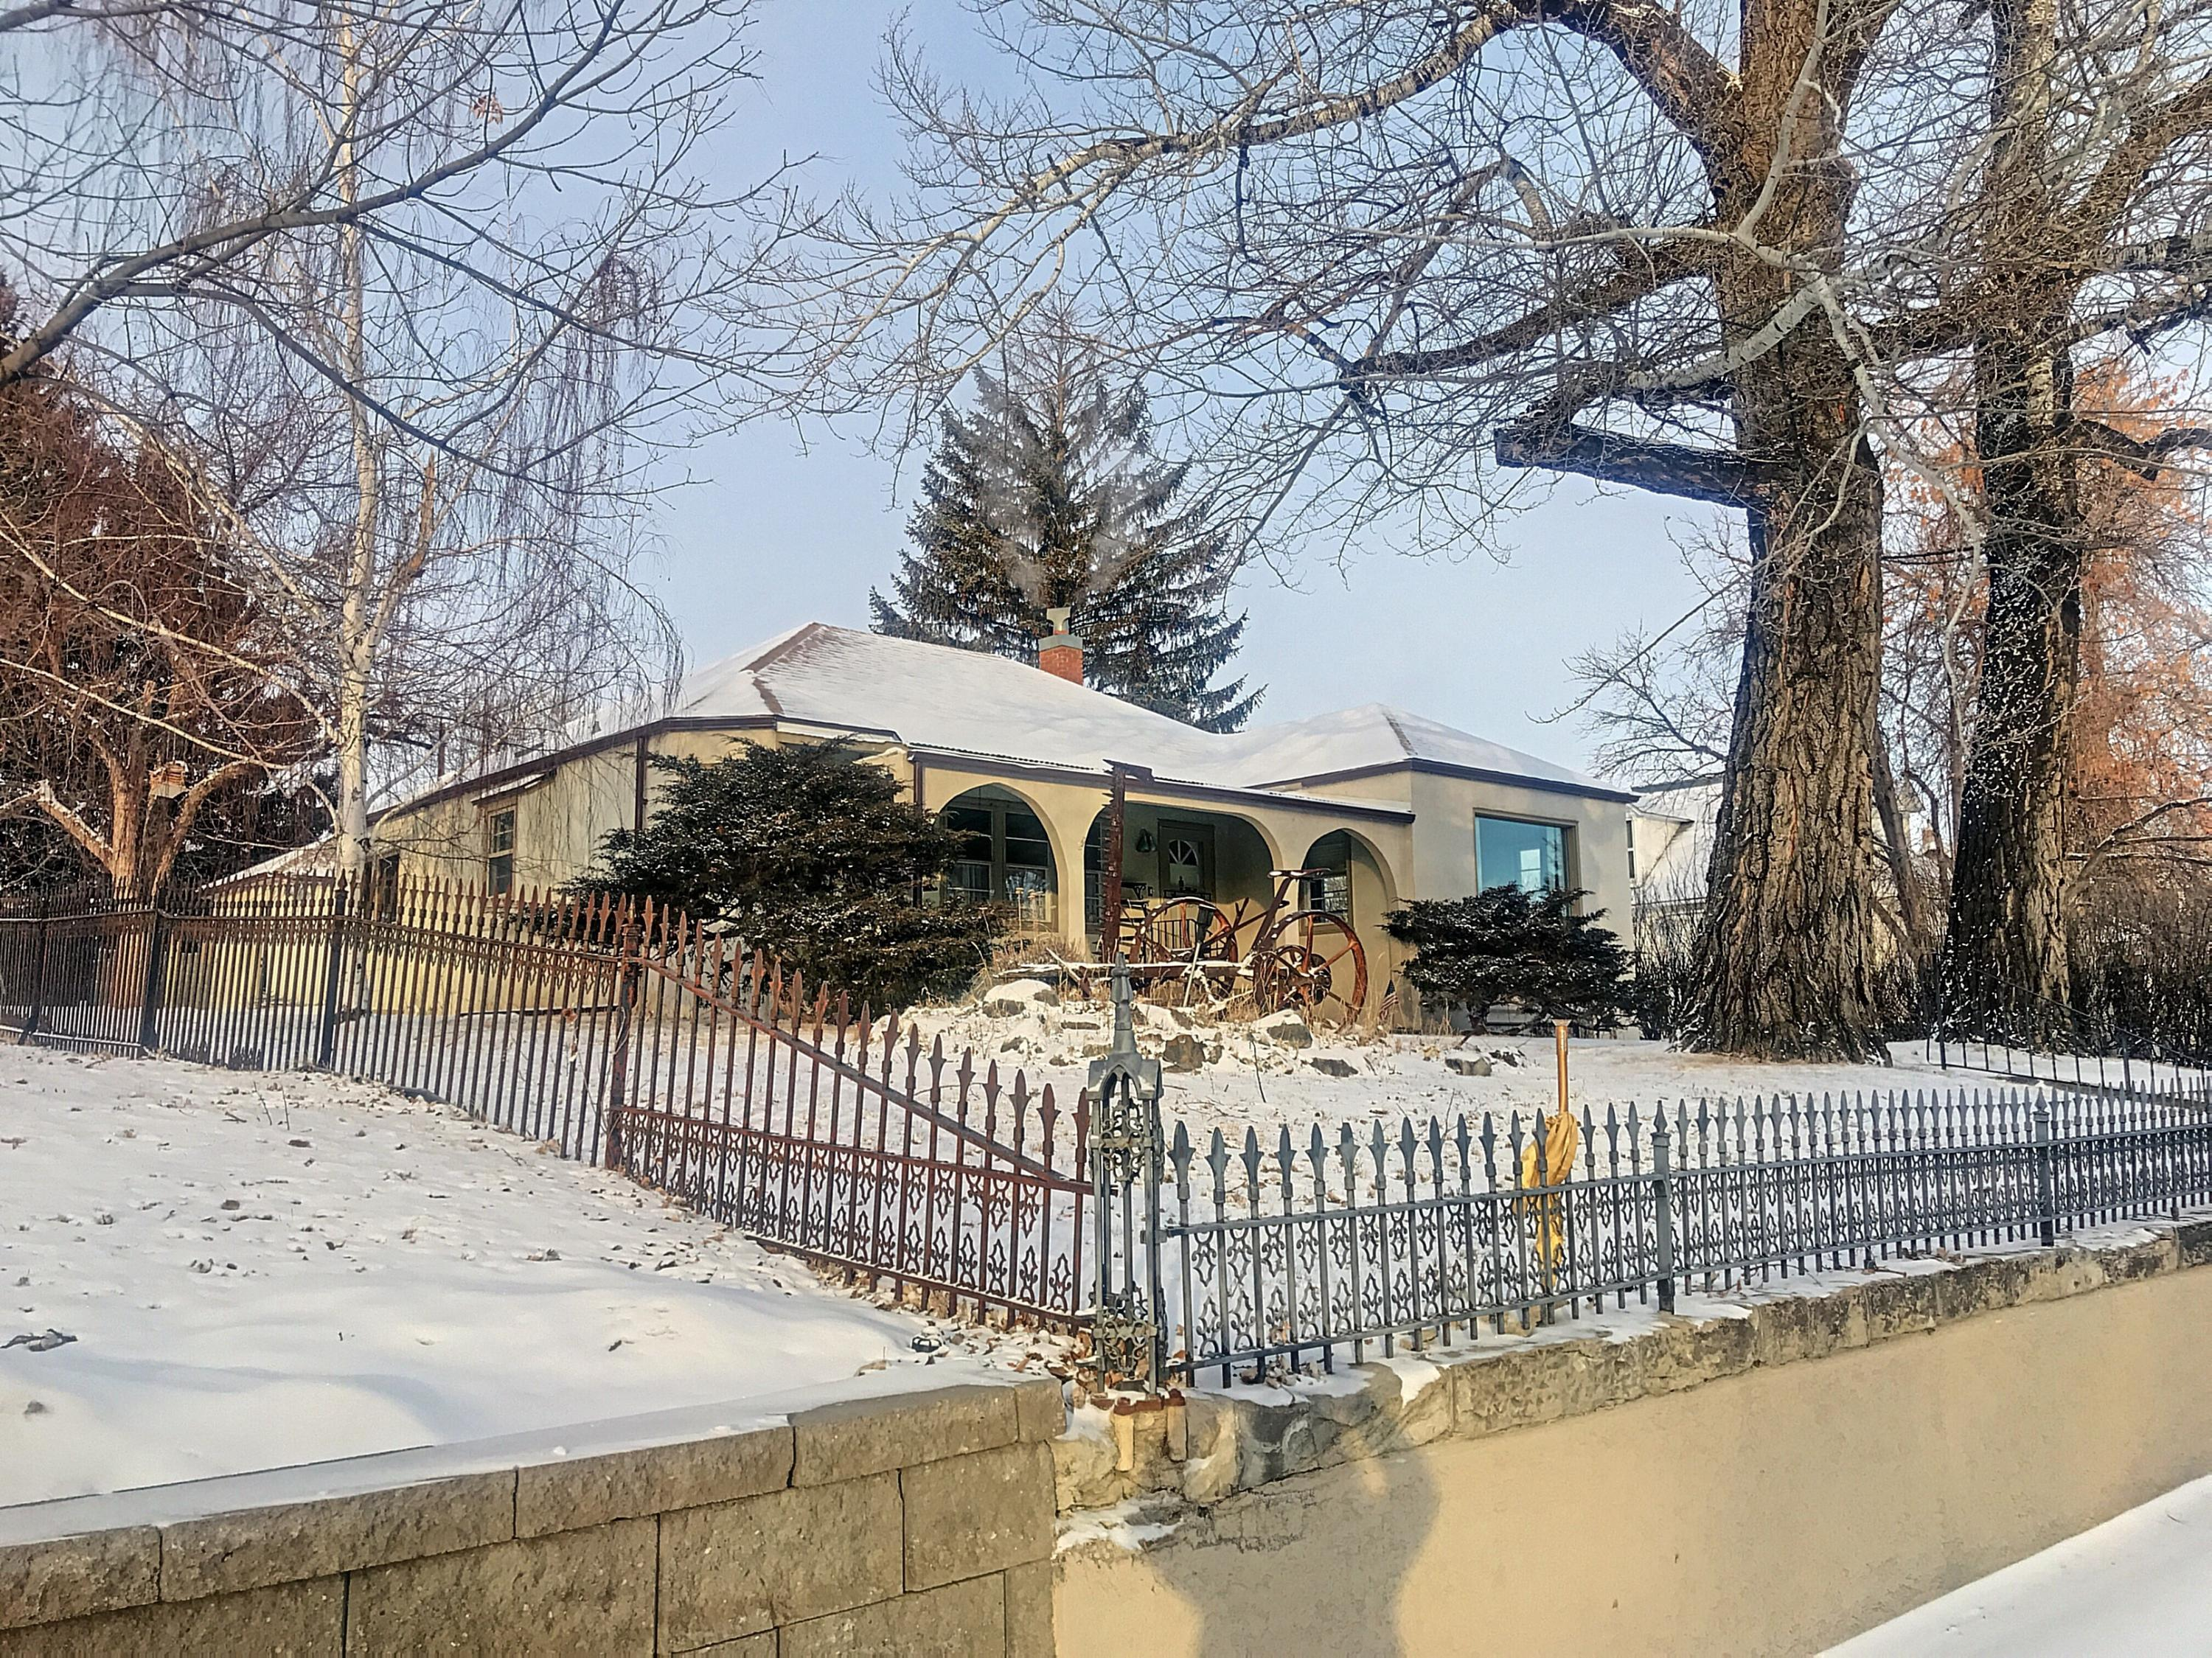 308 S Main Street, Buffalo, Wyoming 82834, 3 Bedrooms Bedrooms, ,2 BathroomsBathrooms,Residential,For Sale,Main,18-1188